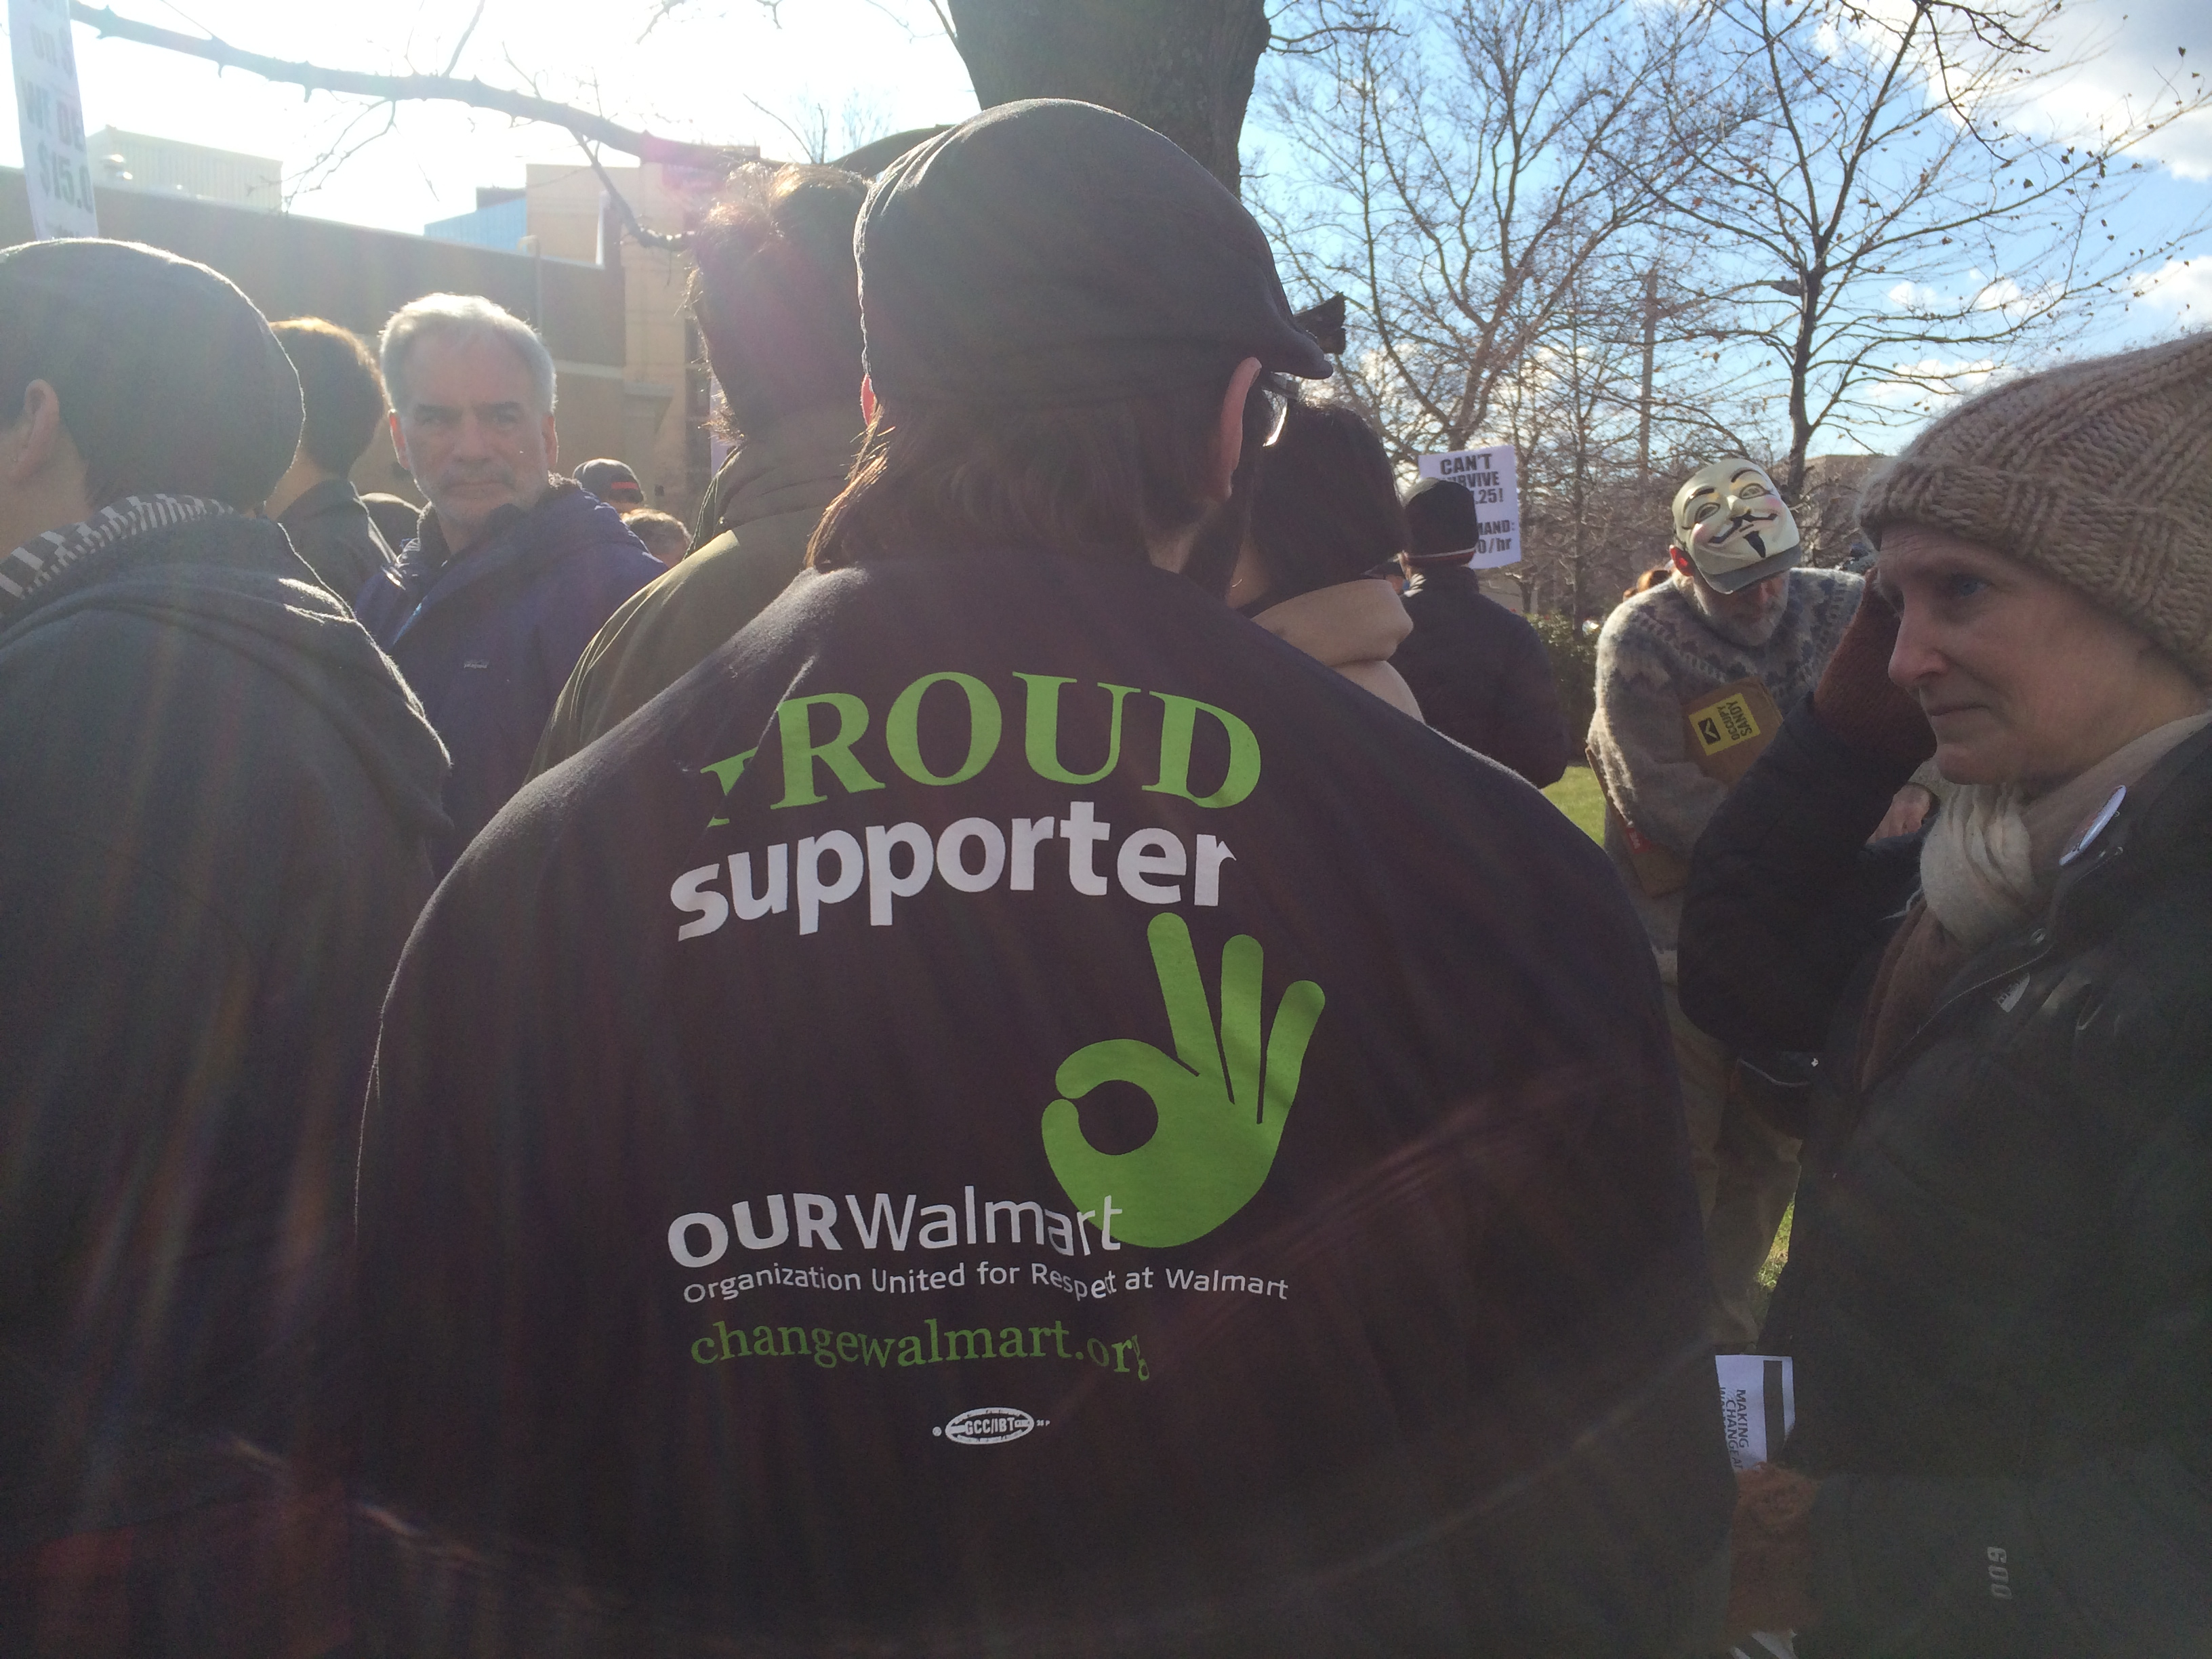 08.Our_Walmart_Supporter